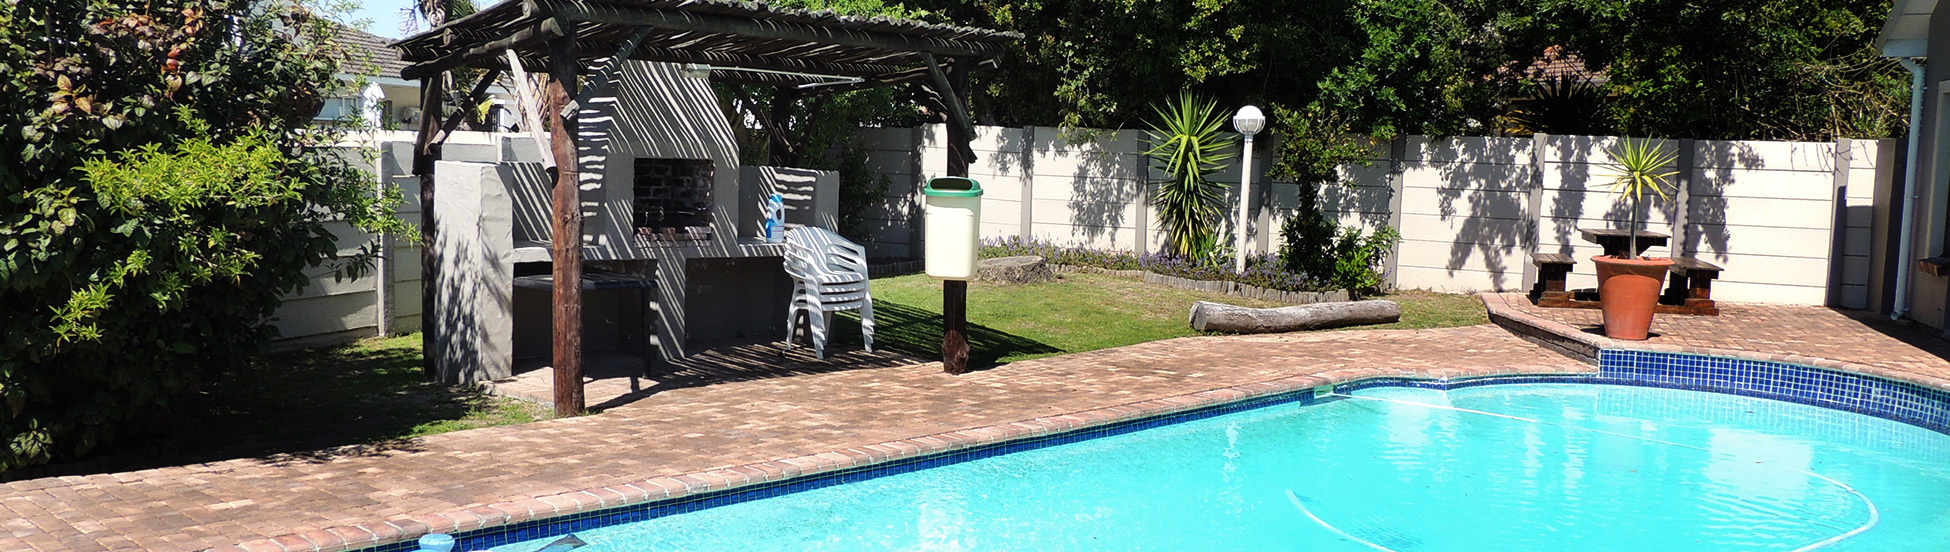 accommodation-self-catering-port-elizabeth-south-africa